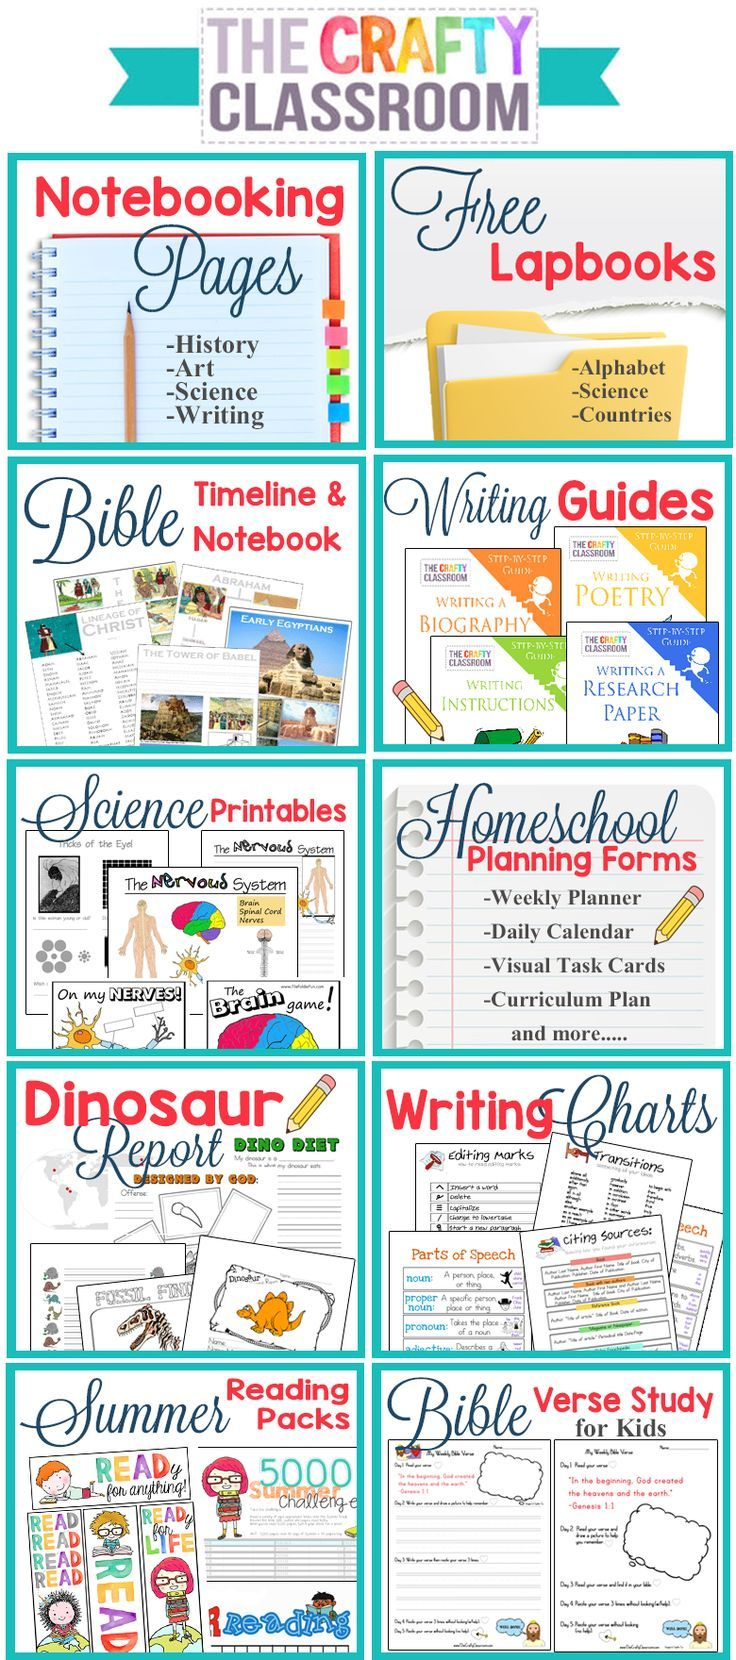 Free Homeschool Printables and Teaching Resources. There is so much here on this website!! Bible Timeline, Writing Guides for Kids, Homeschool Planning Forms, Free Notebooking Pages, Free Lapbooks, Writing Charts....Huge Resource!! http://www.TheCraftyClassroom.com